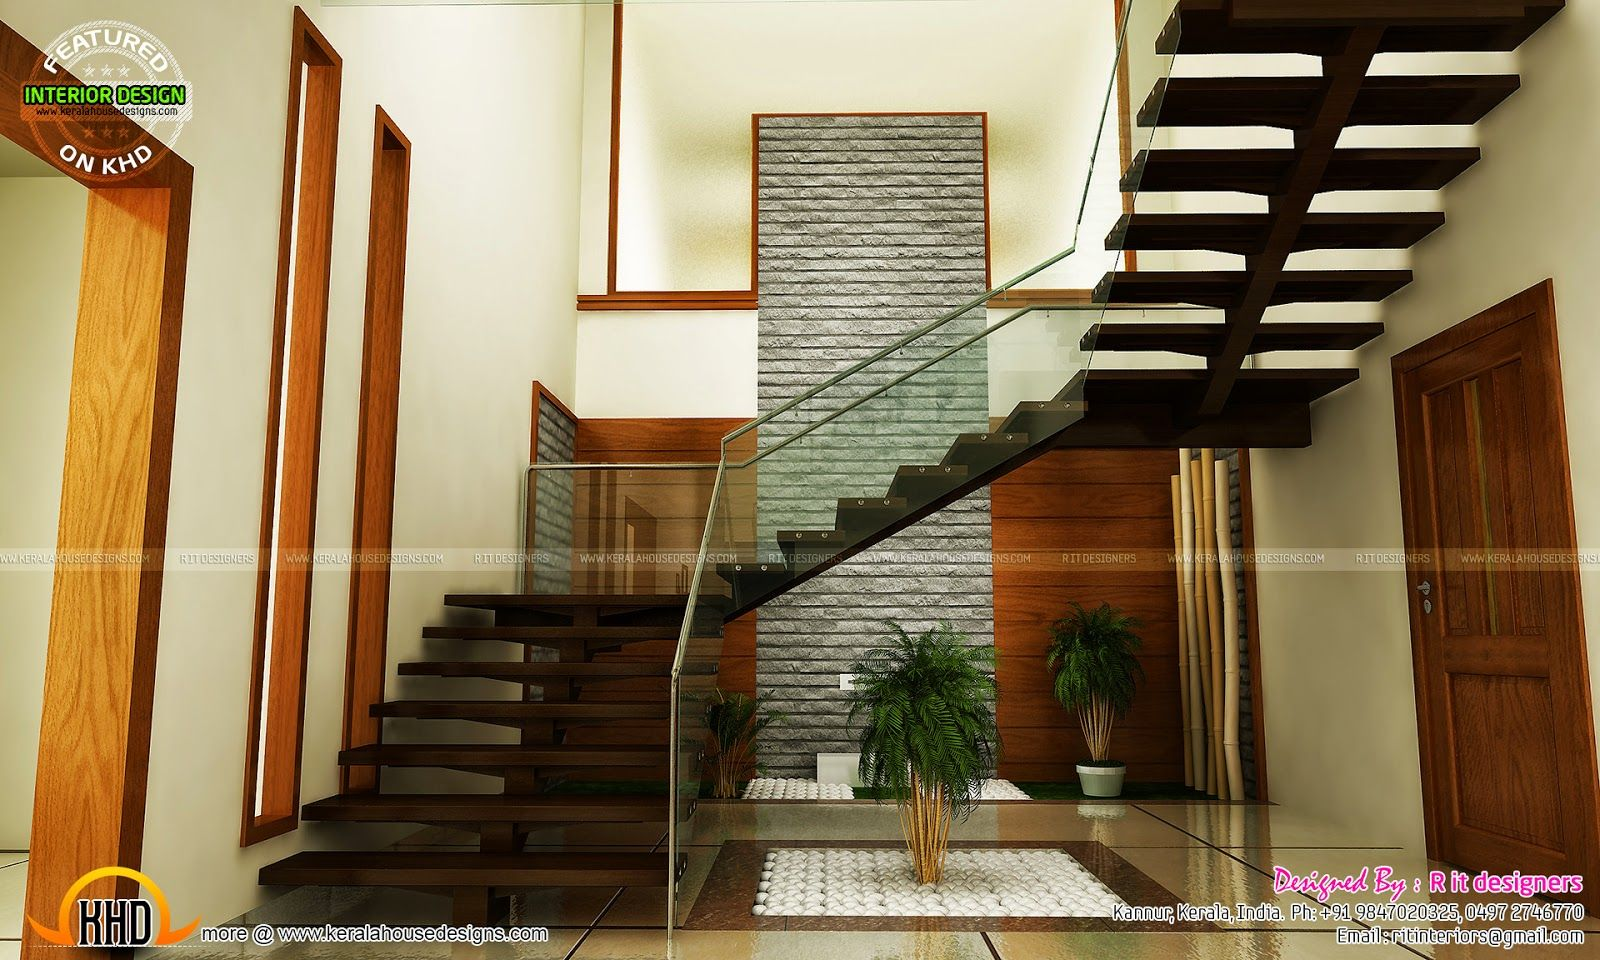 Staircase Bedroom Dining Interiors Kerala Home Design Indian